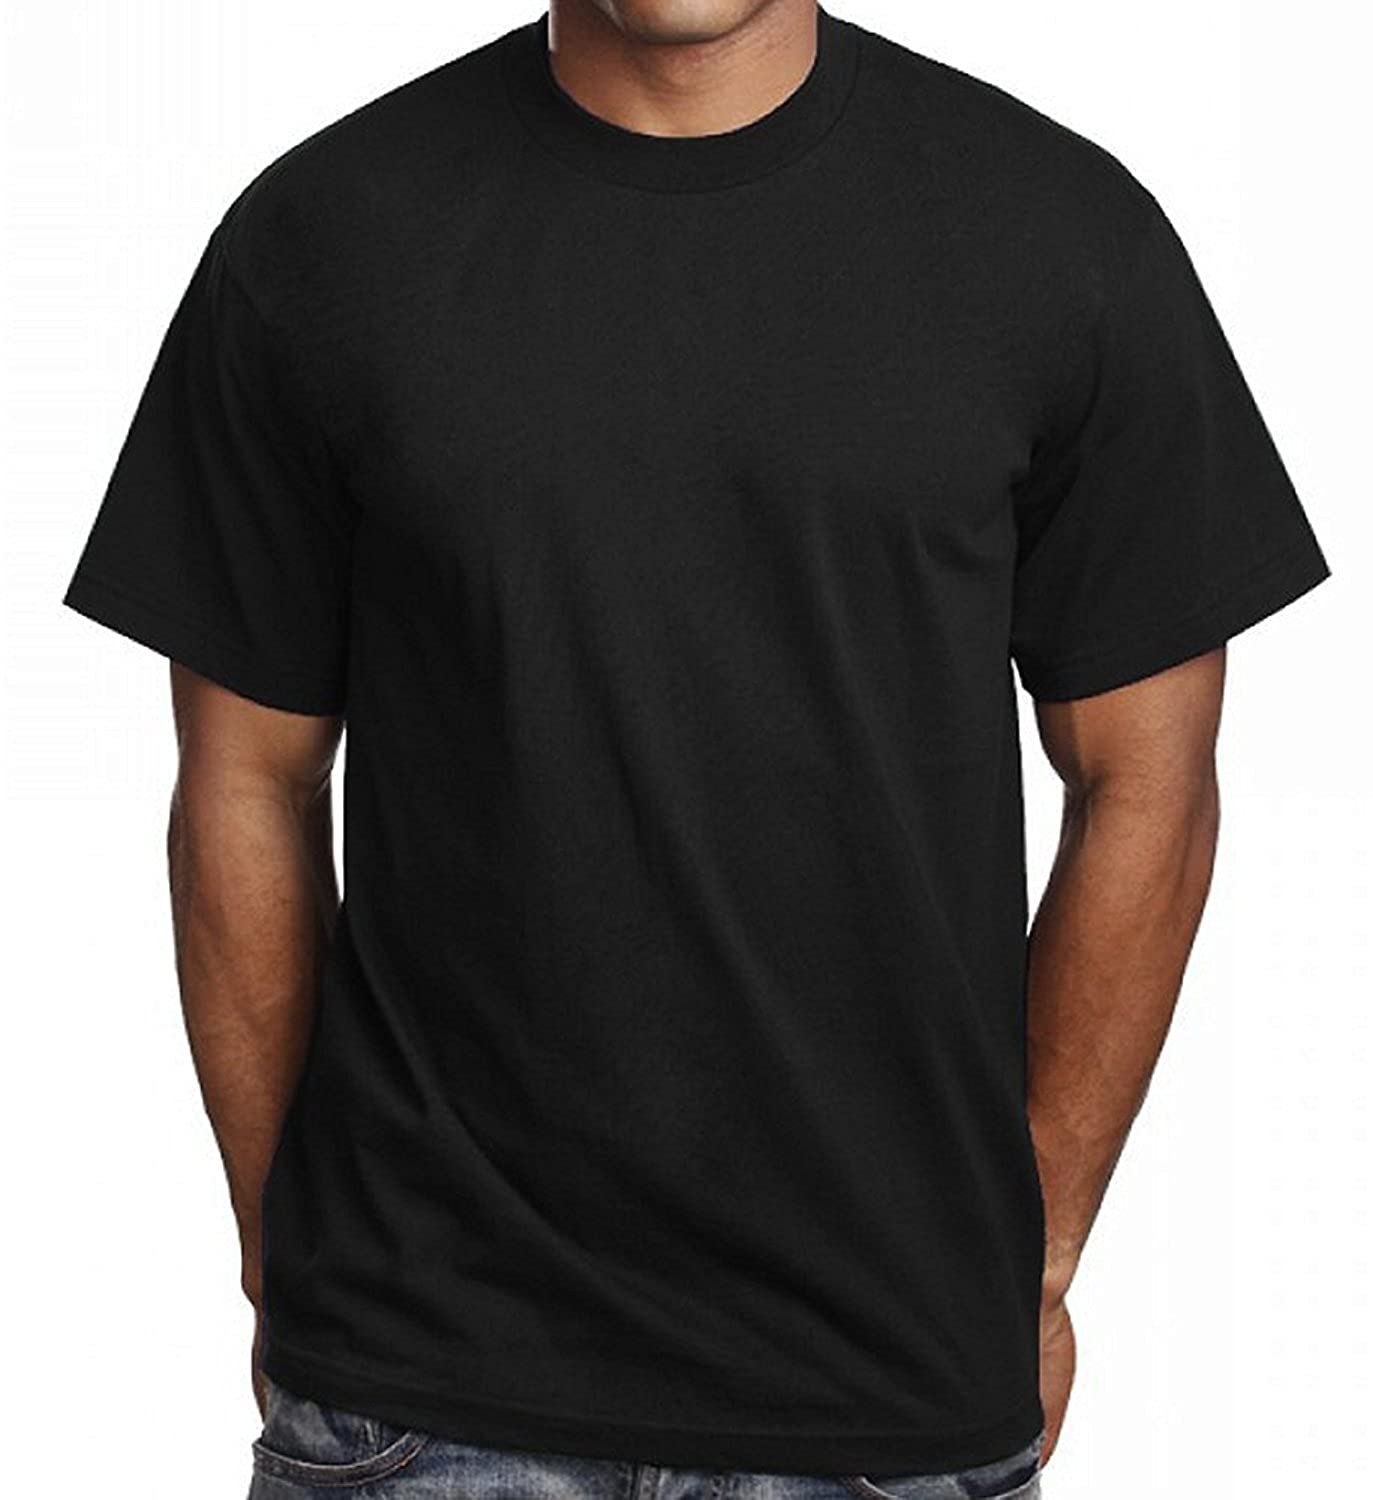 152dffaa8 6 Pack Men's Plain Black T Shirts Pro 5 Athletic Blank Tees